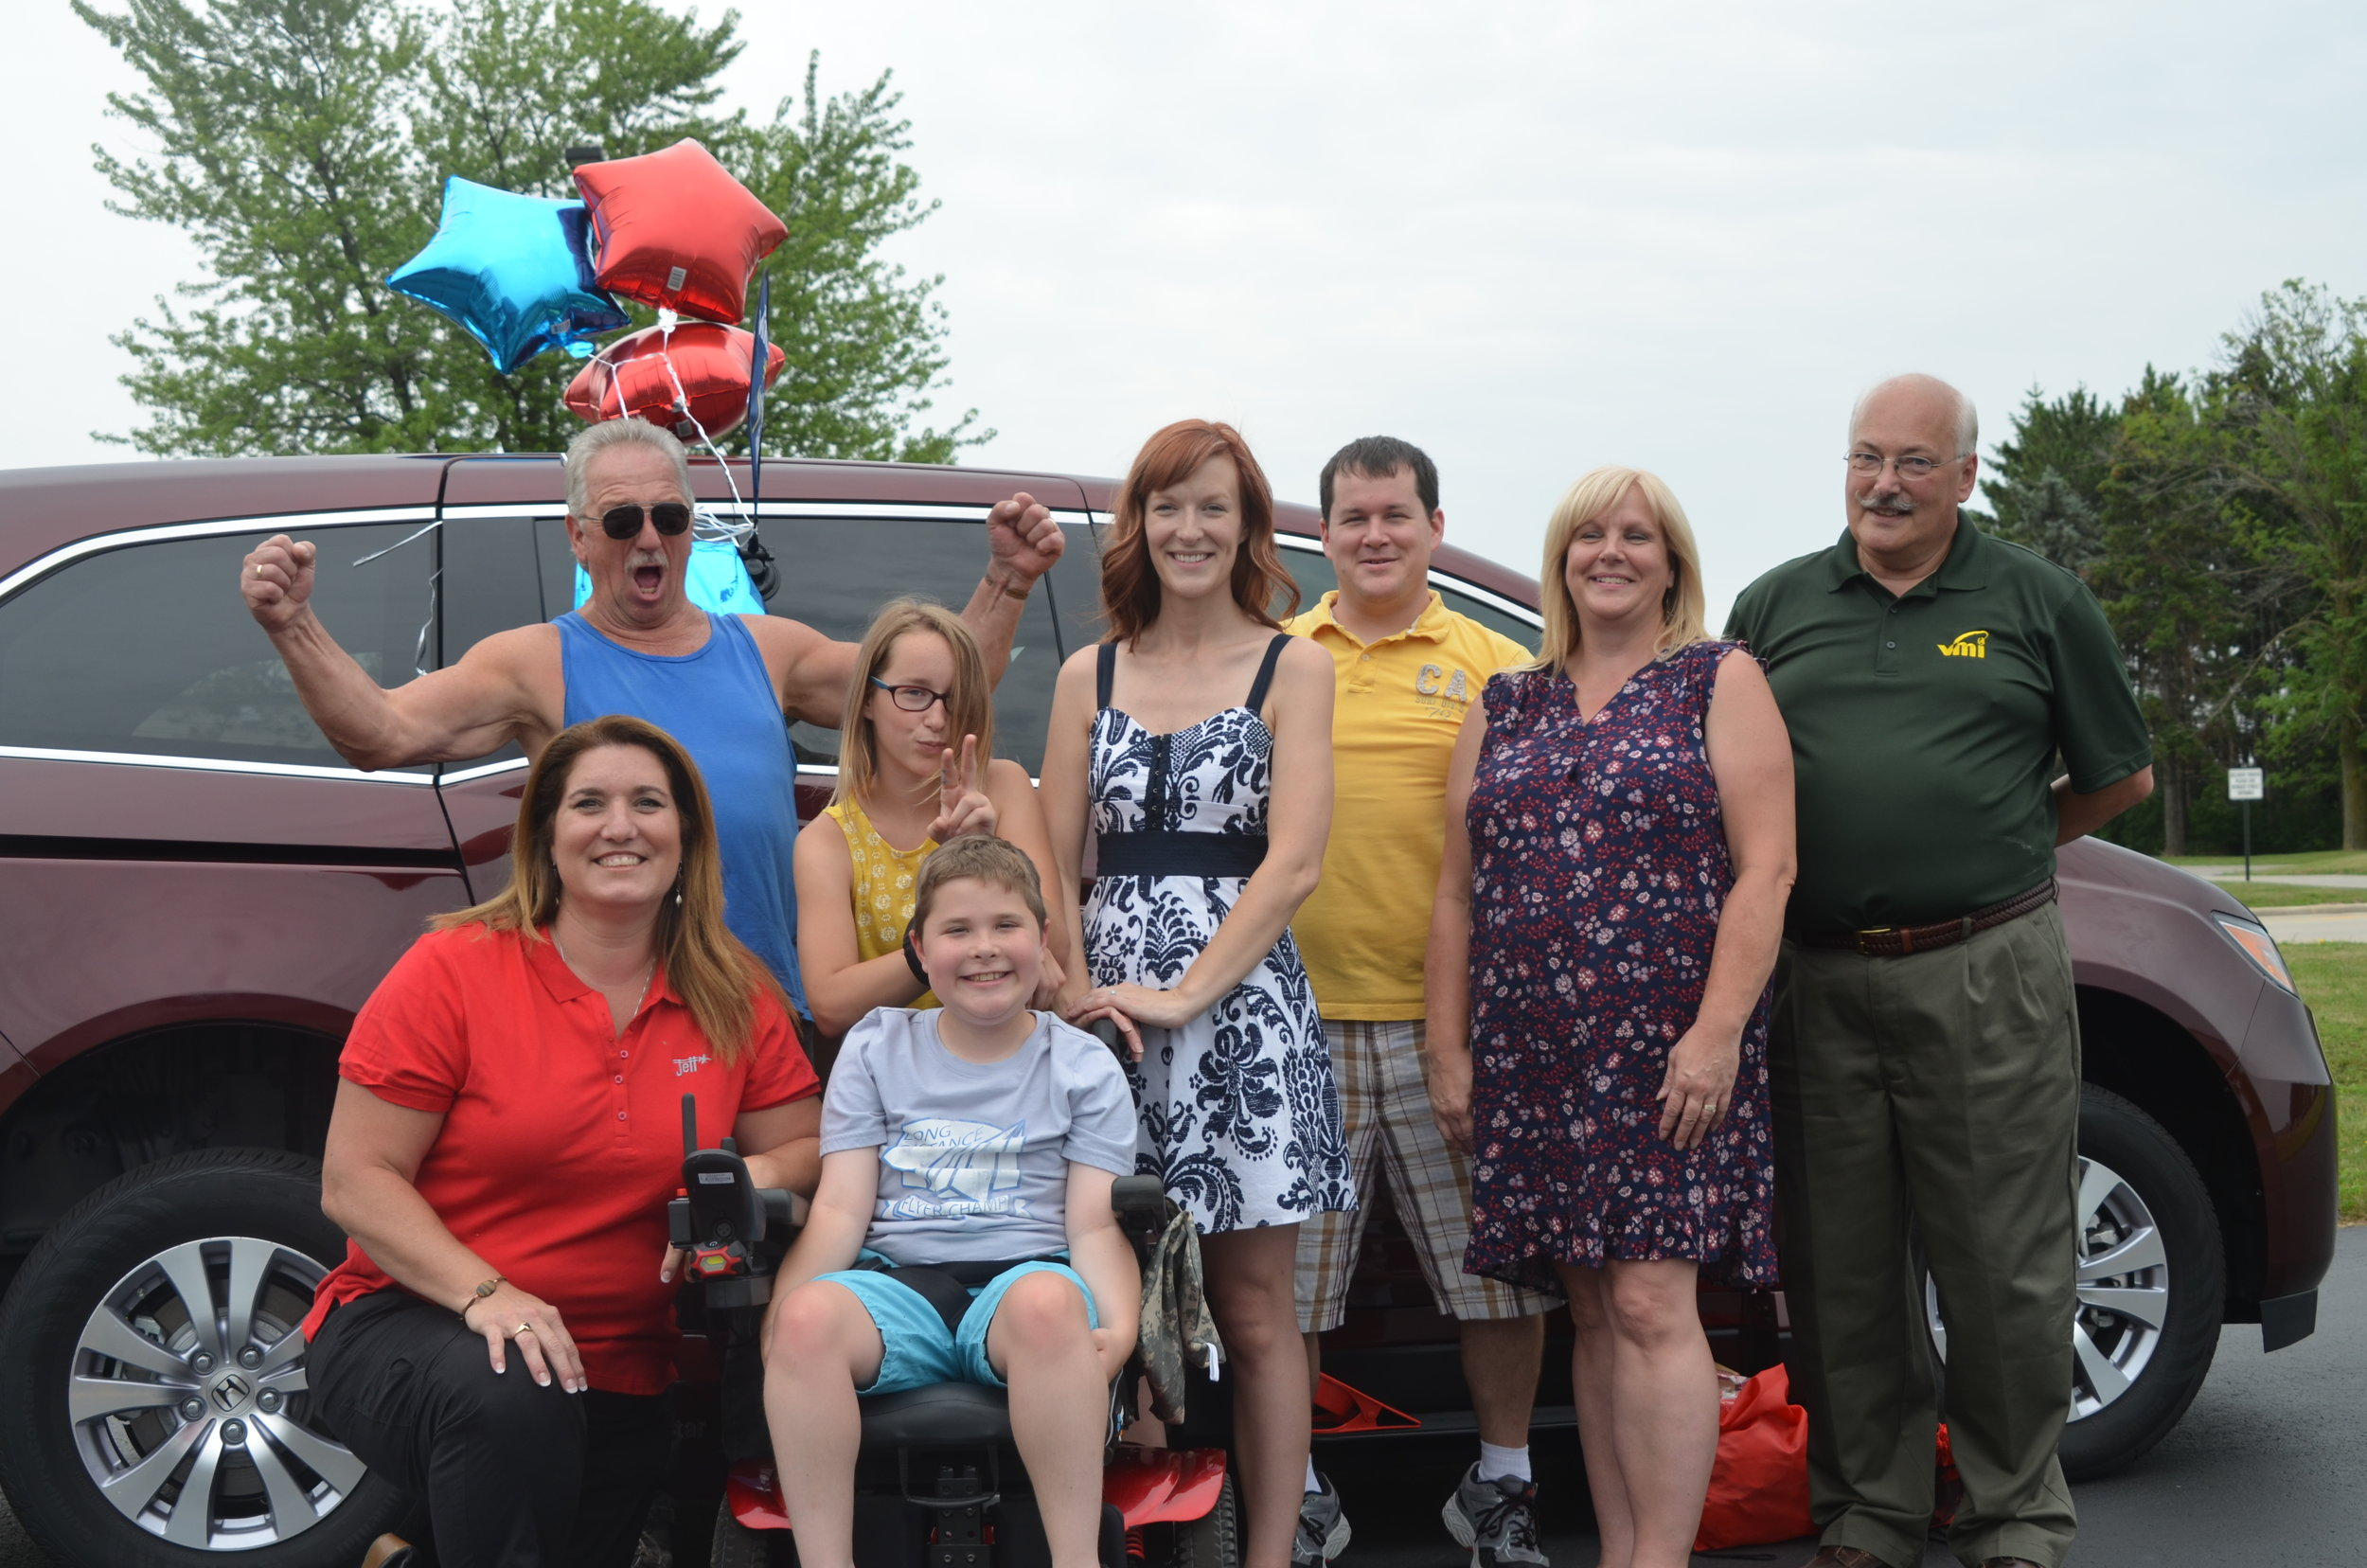 All smiles today in Green Bay! Sue Scroggins, Director of Finance and Operations,was in Wisconsin today to present the van on behalf of Jett Foundation.